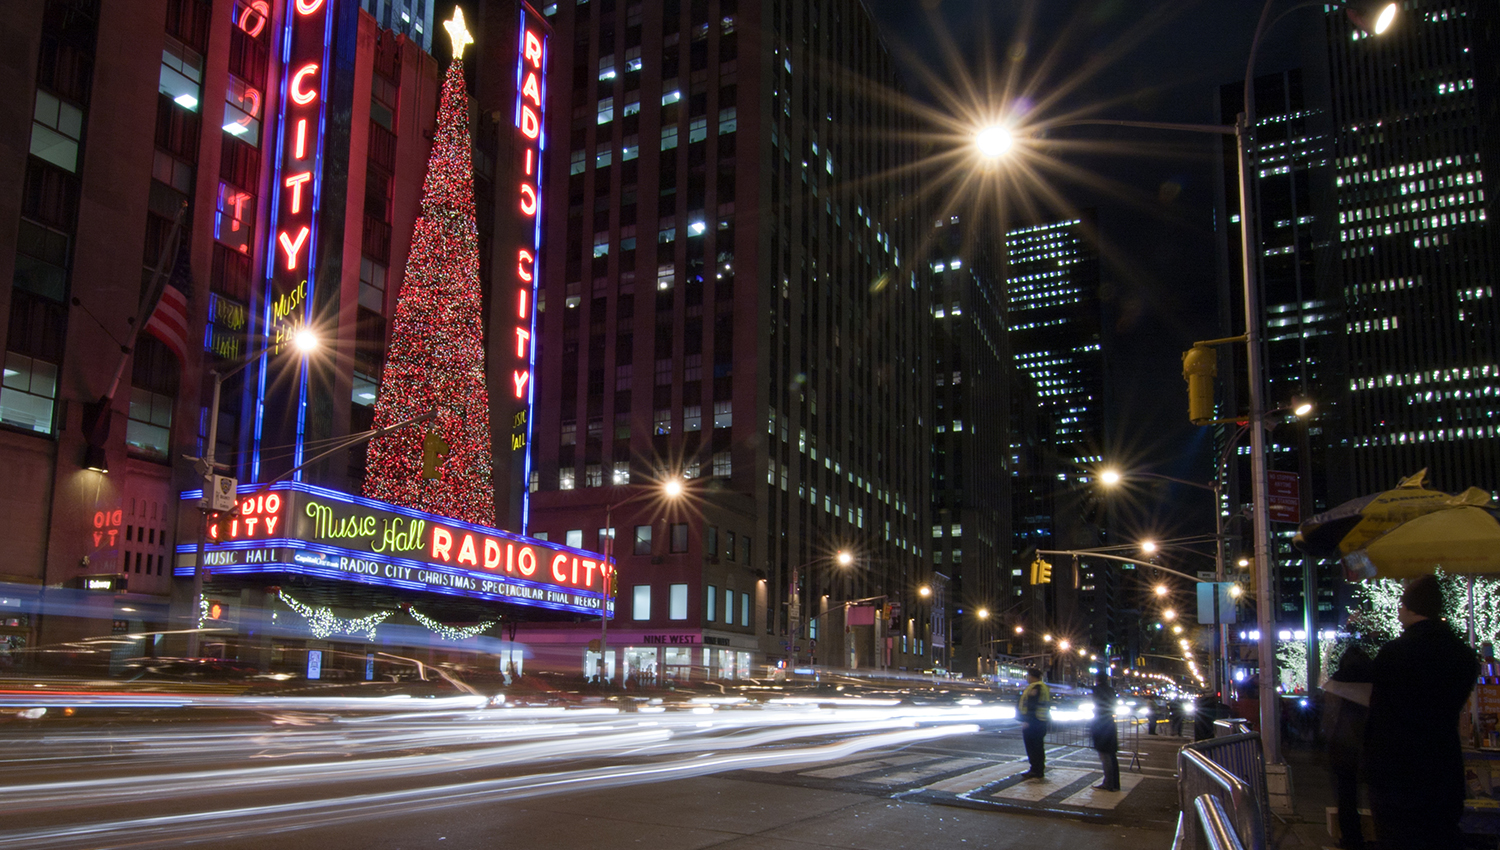 Enjoy the Radio City Christmas Spectacular